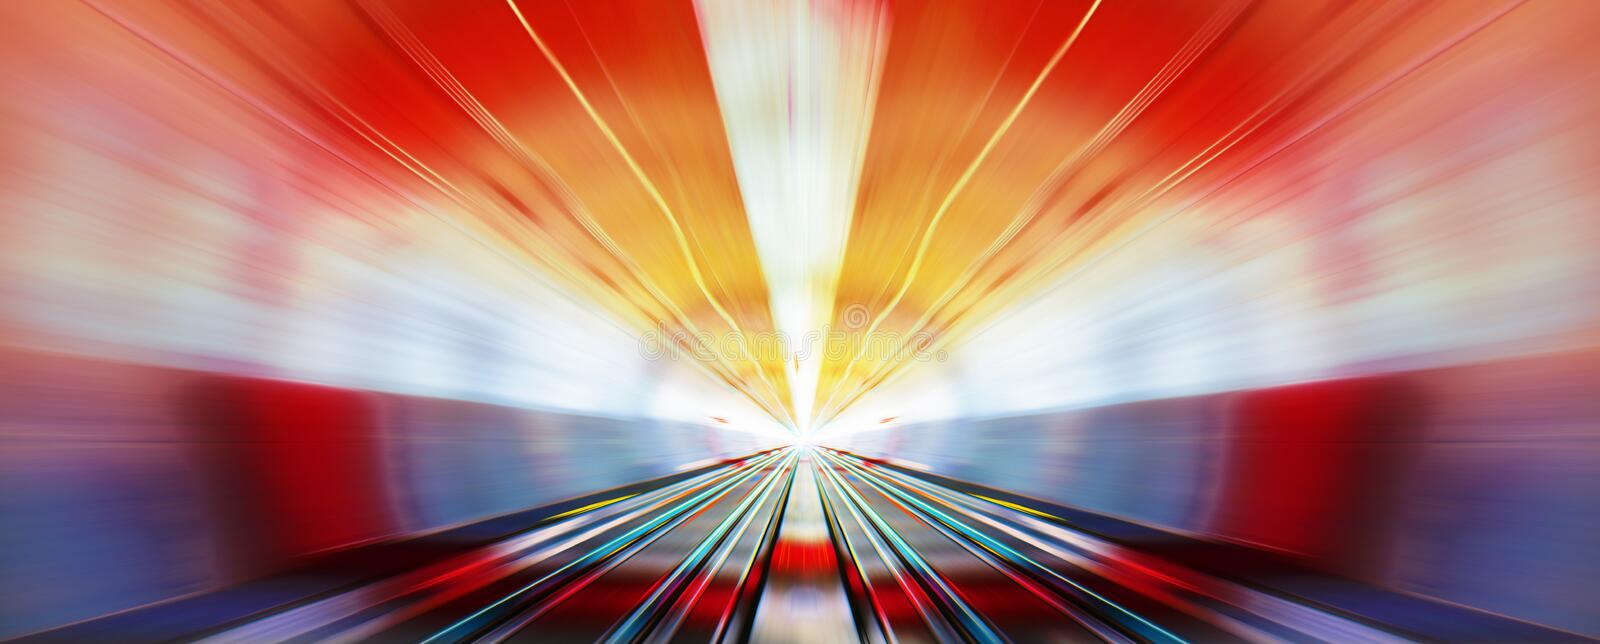 High speed in night. Driving at high speed in subway - motion blur